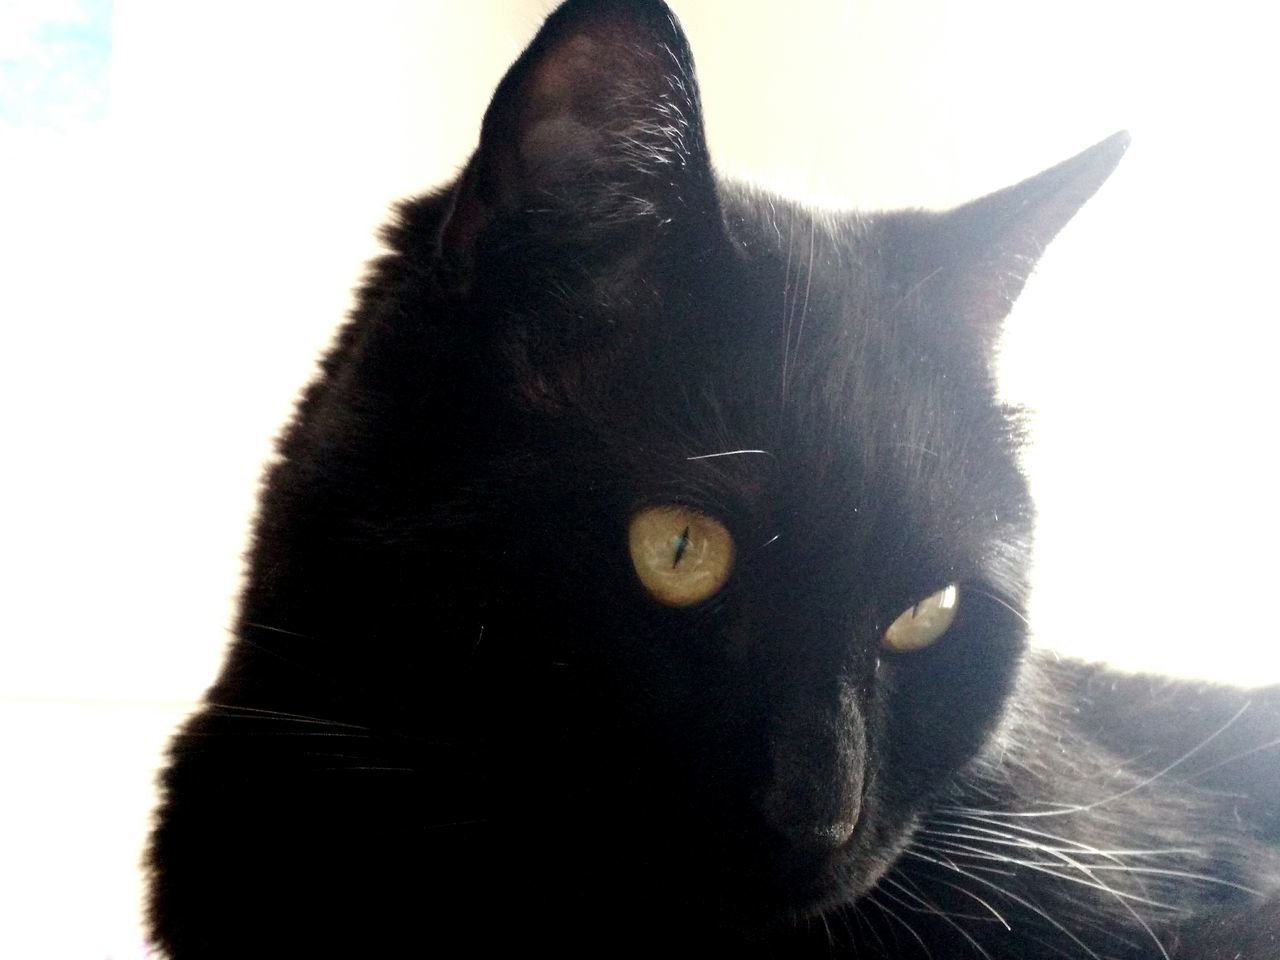 One Animal Domestic Cat Pets Domestic Animals Mammal Feline Indoors  Black Color Animal Themes Cat Home Interior Yellow Eyes Close-up No People Day Cats Of EyeEm Cat Lovers Yellow Eyed Cat Black Cats Are Beautiful Cat Eyes Cat Gaze Black Cat Photography Tranquility Black Cat Cat♡